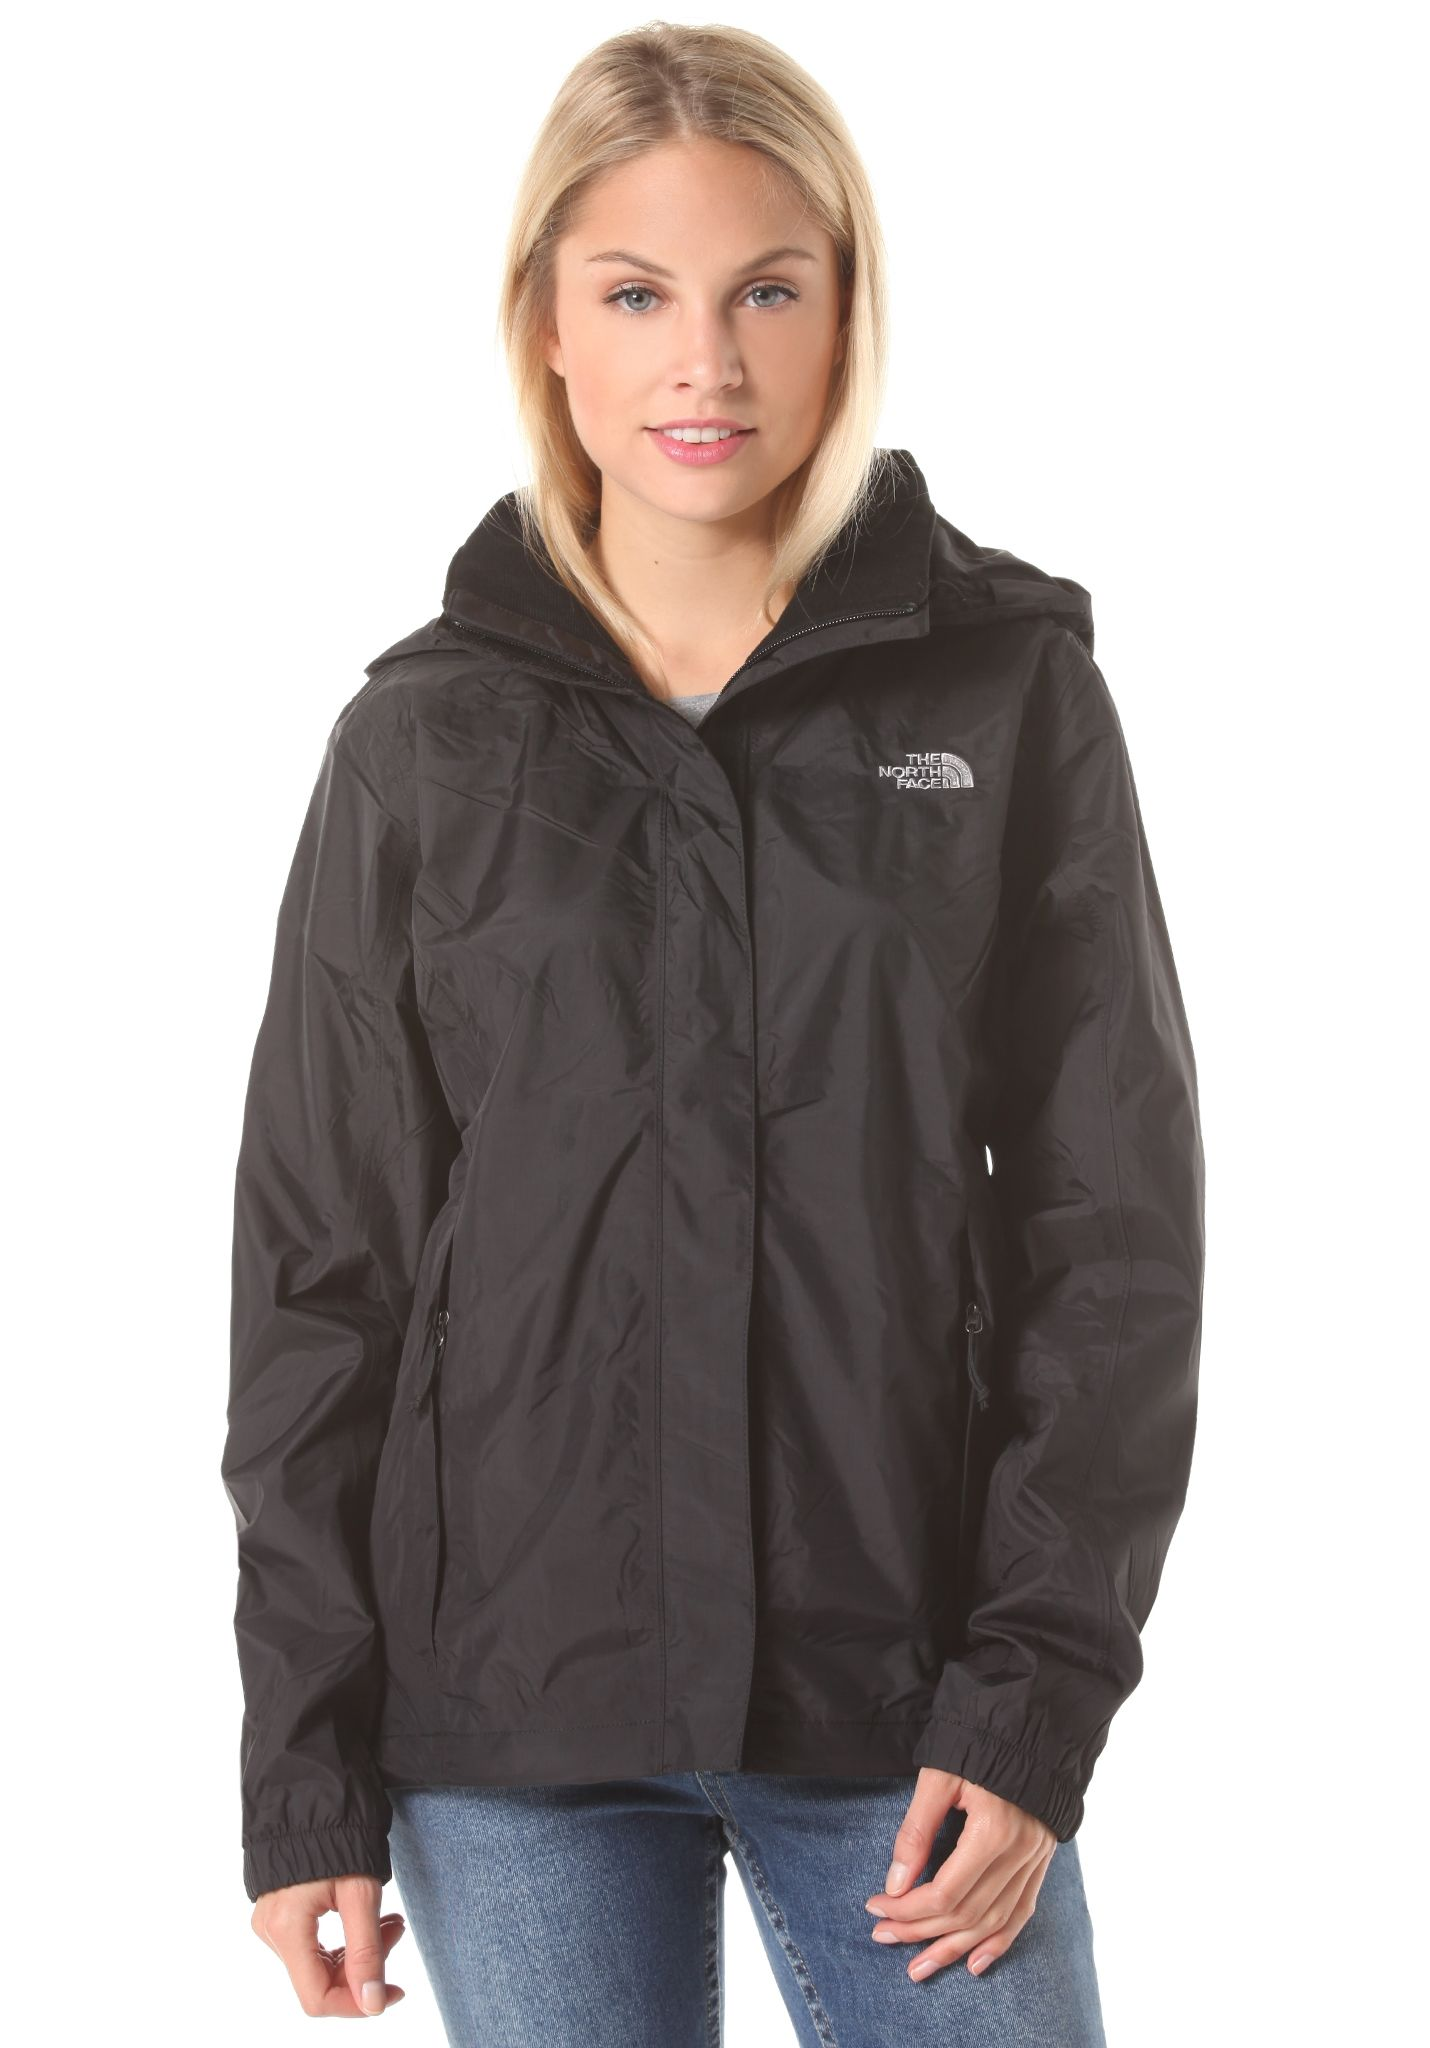 THE NORTH FACE Resolve Functional Jacket for Women Black